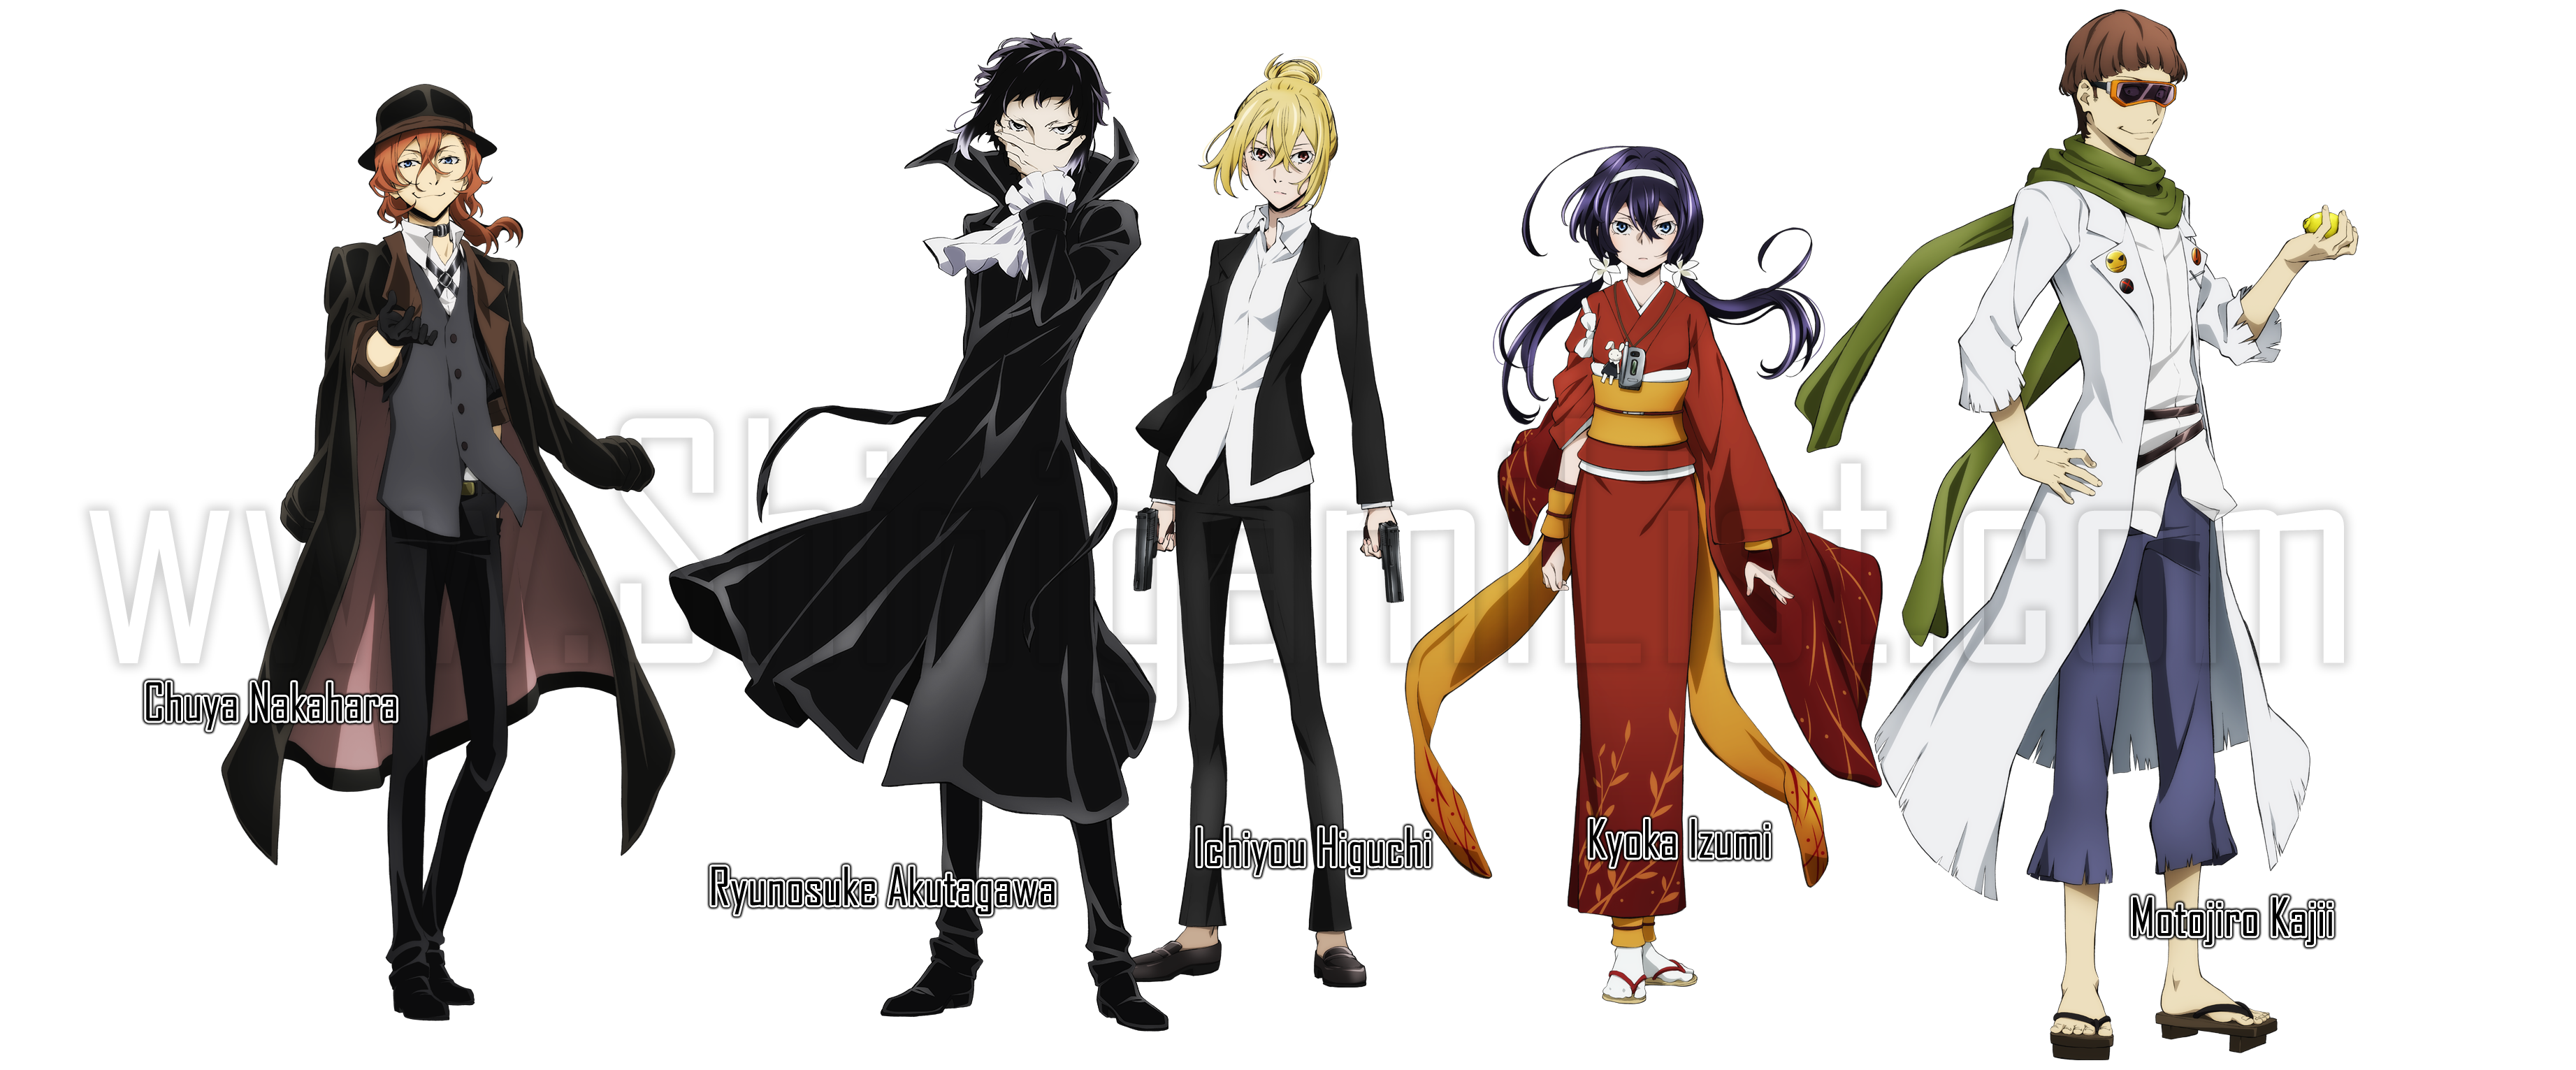 Bungou Stray Dogs Bungou-stray-dogs-port-mafia-characters